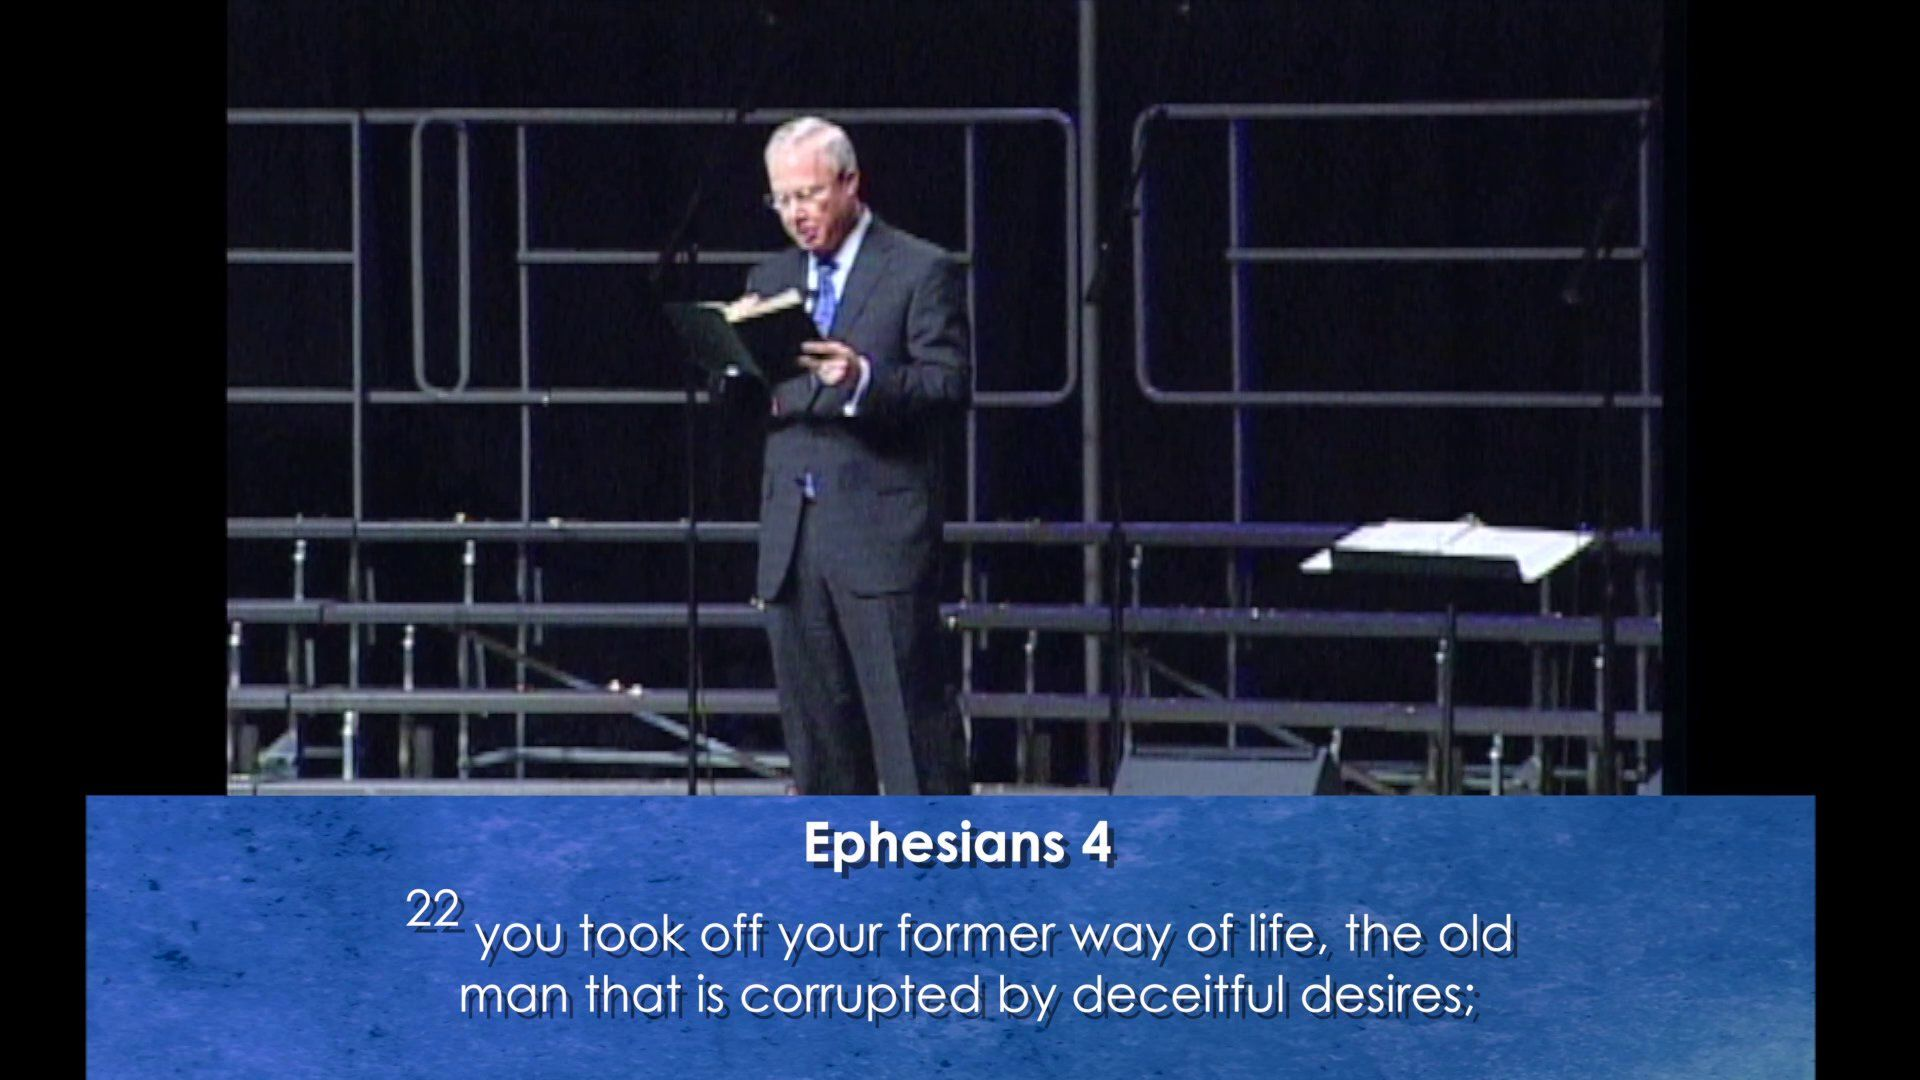 February 1, 2015 - Getting Rid of The Old Man (Ephesians 4:17-24)